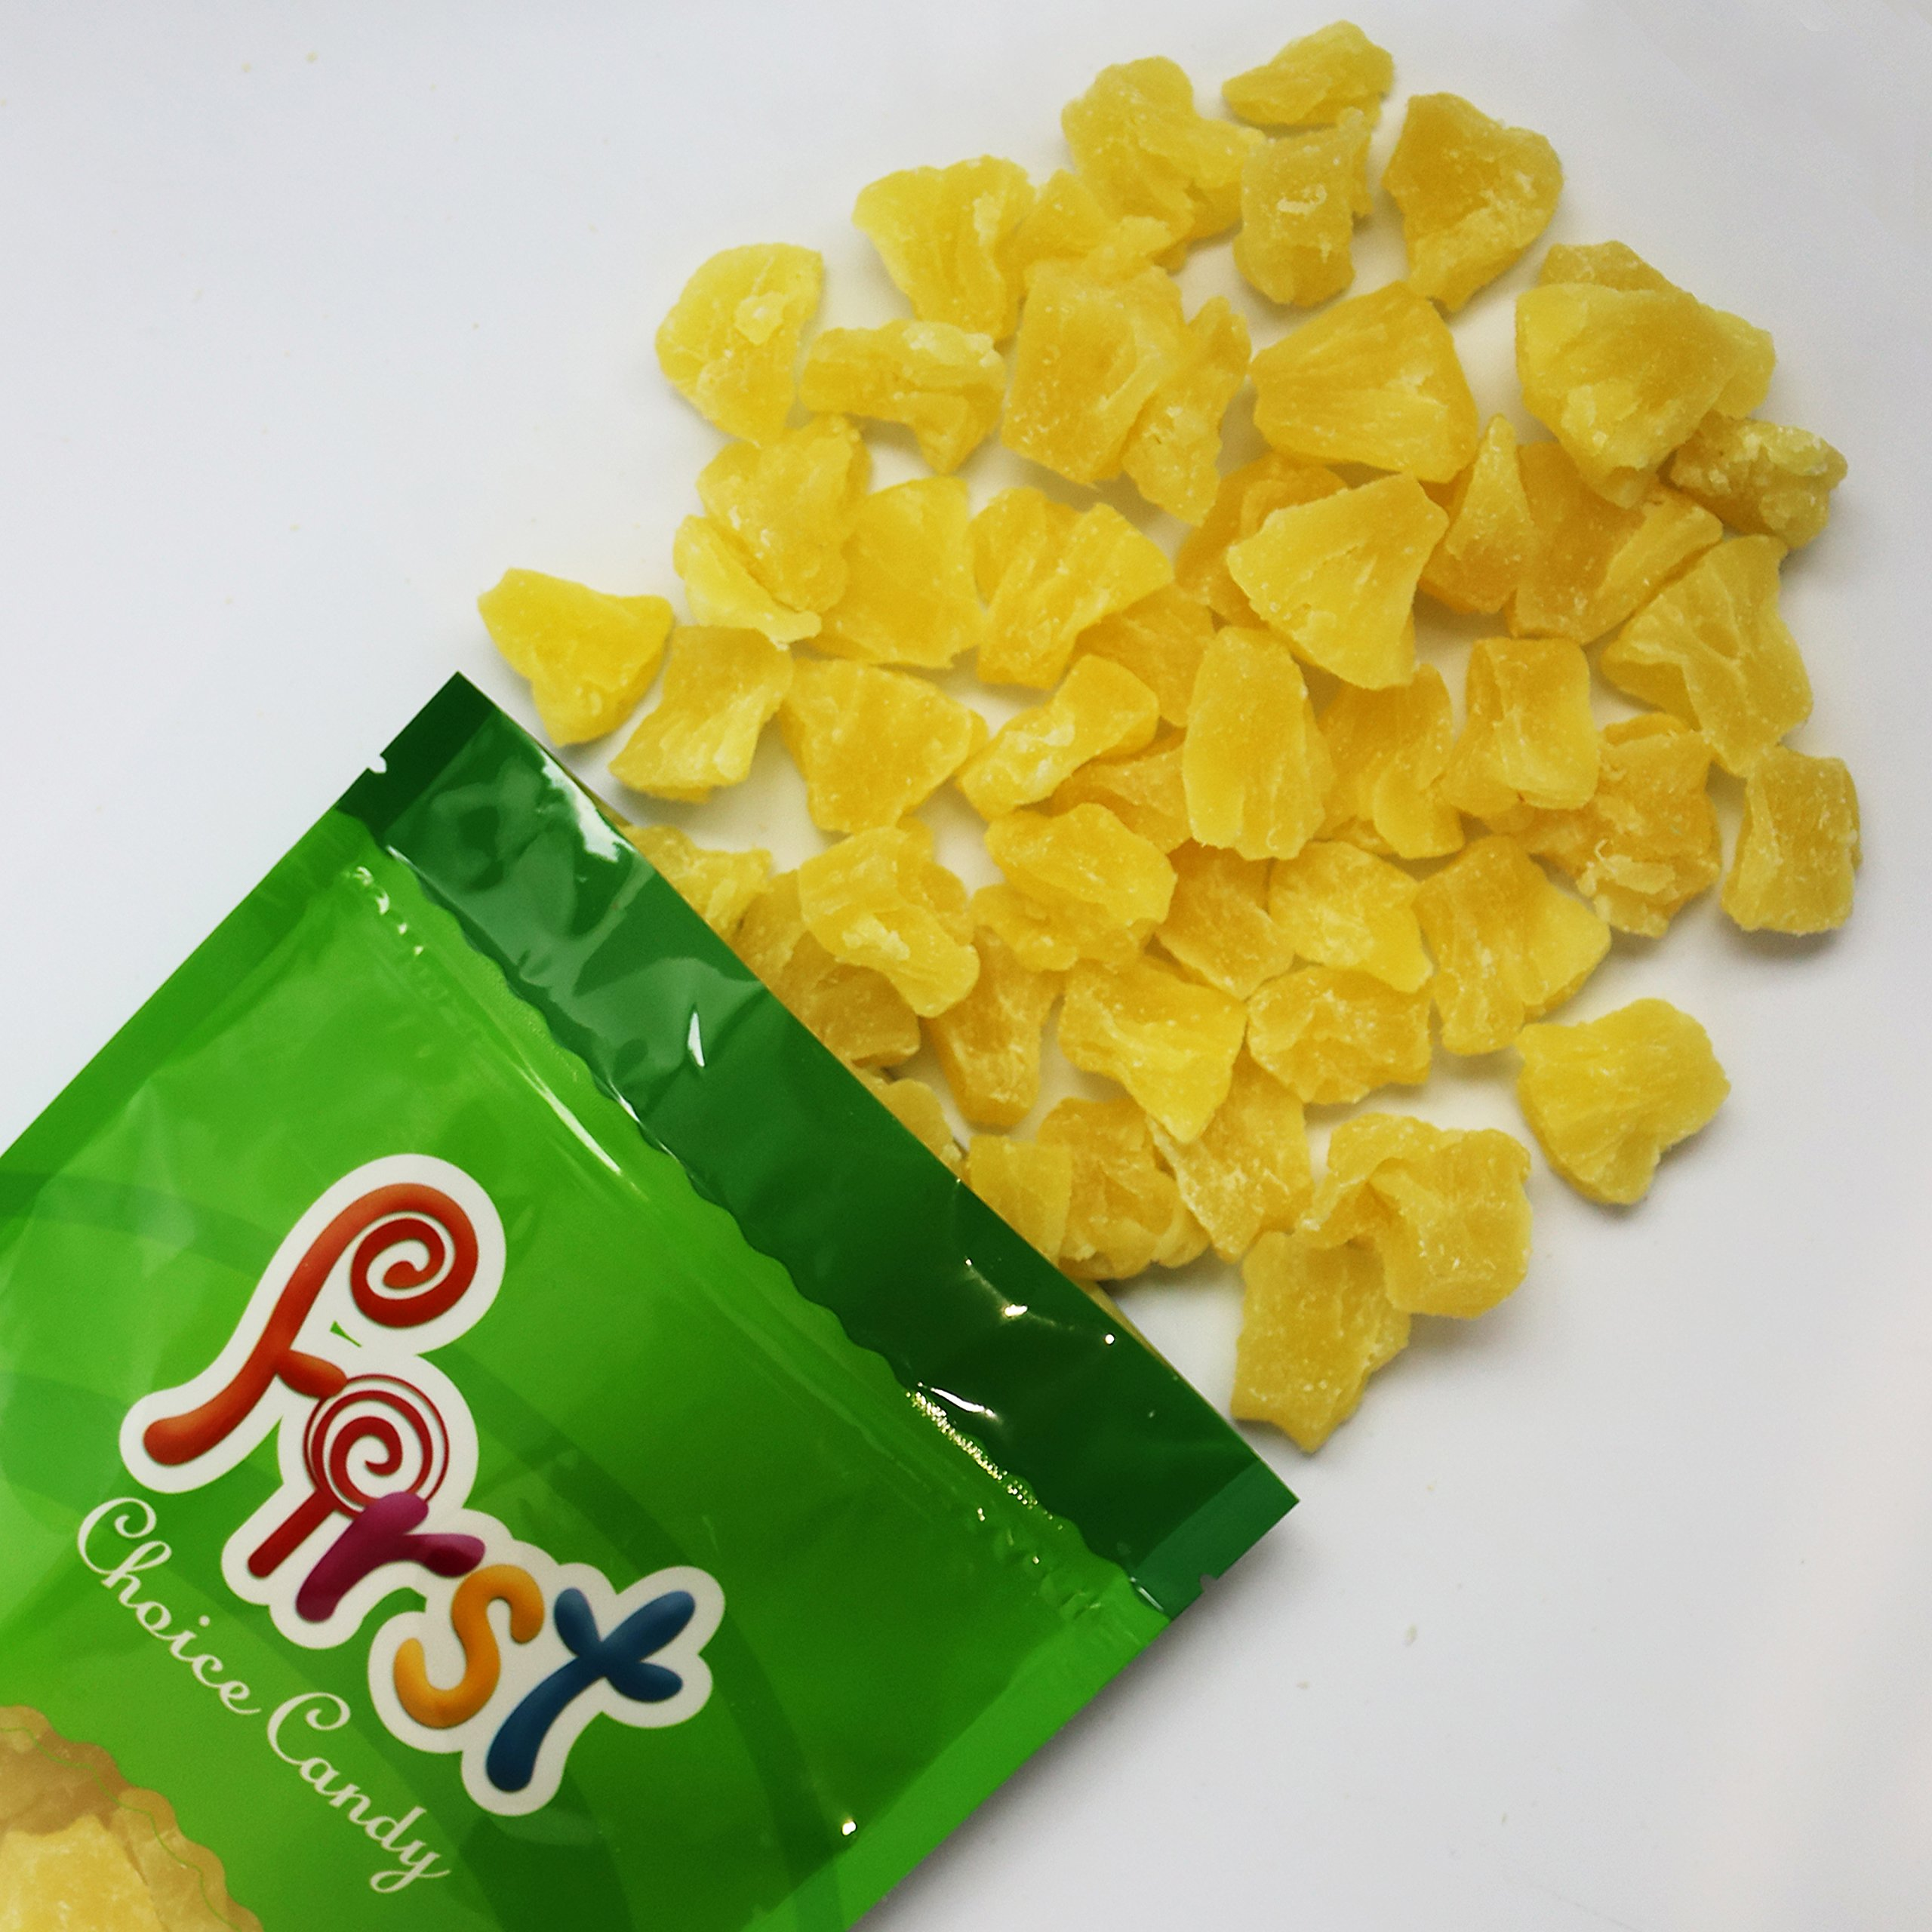 High Quality Pineapple Chunks 1 Pound 16 oz In FirstChoiceCandy Resealable Gift Bag